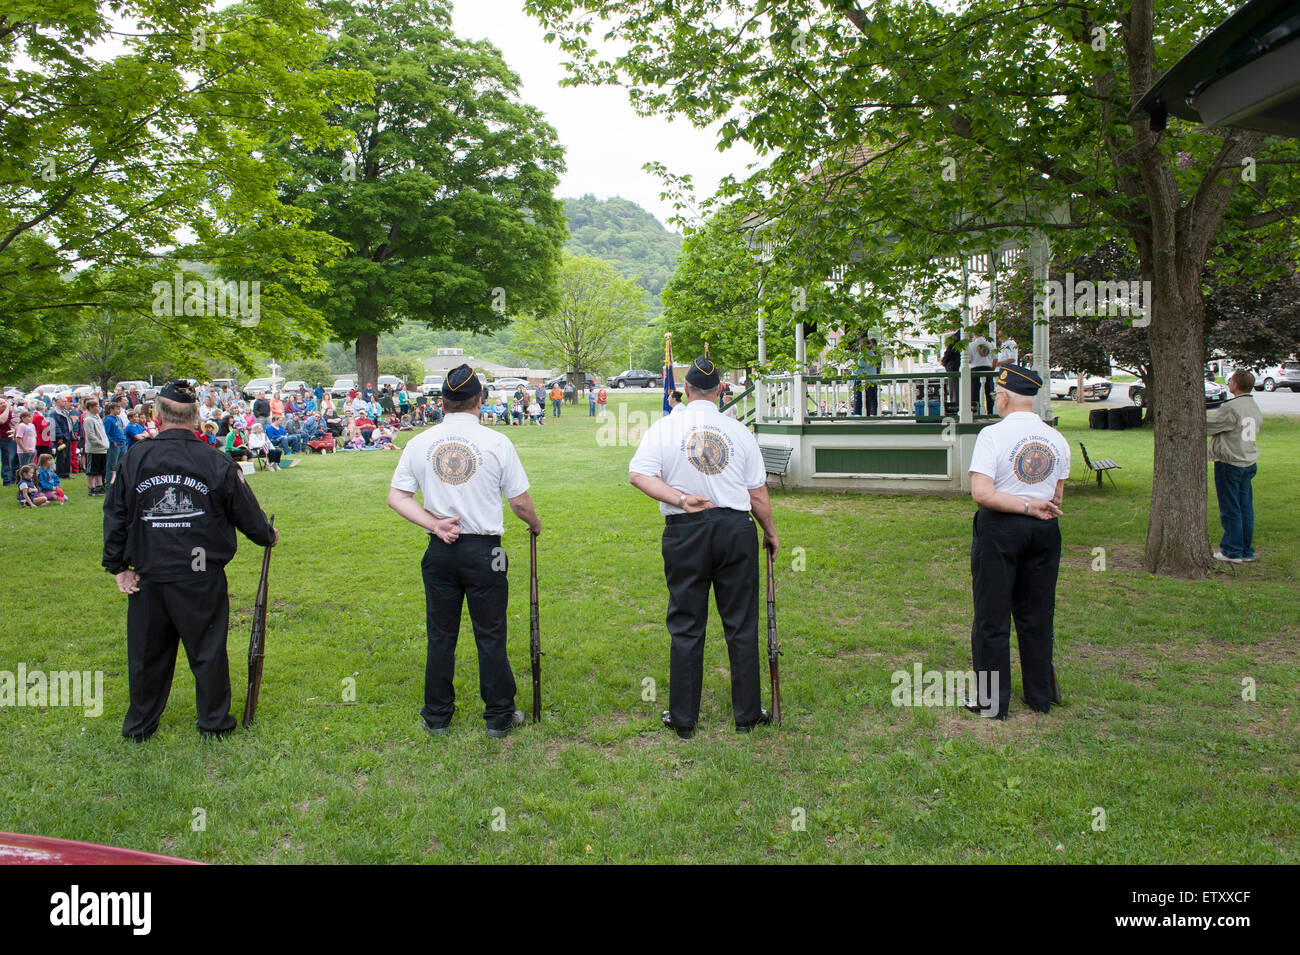 Veterans and Villagers observe Memorial Day ceremony in Townshend Vermont - Stock Image